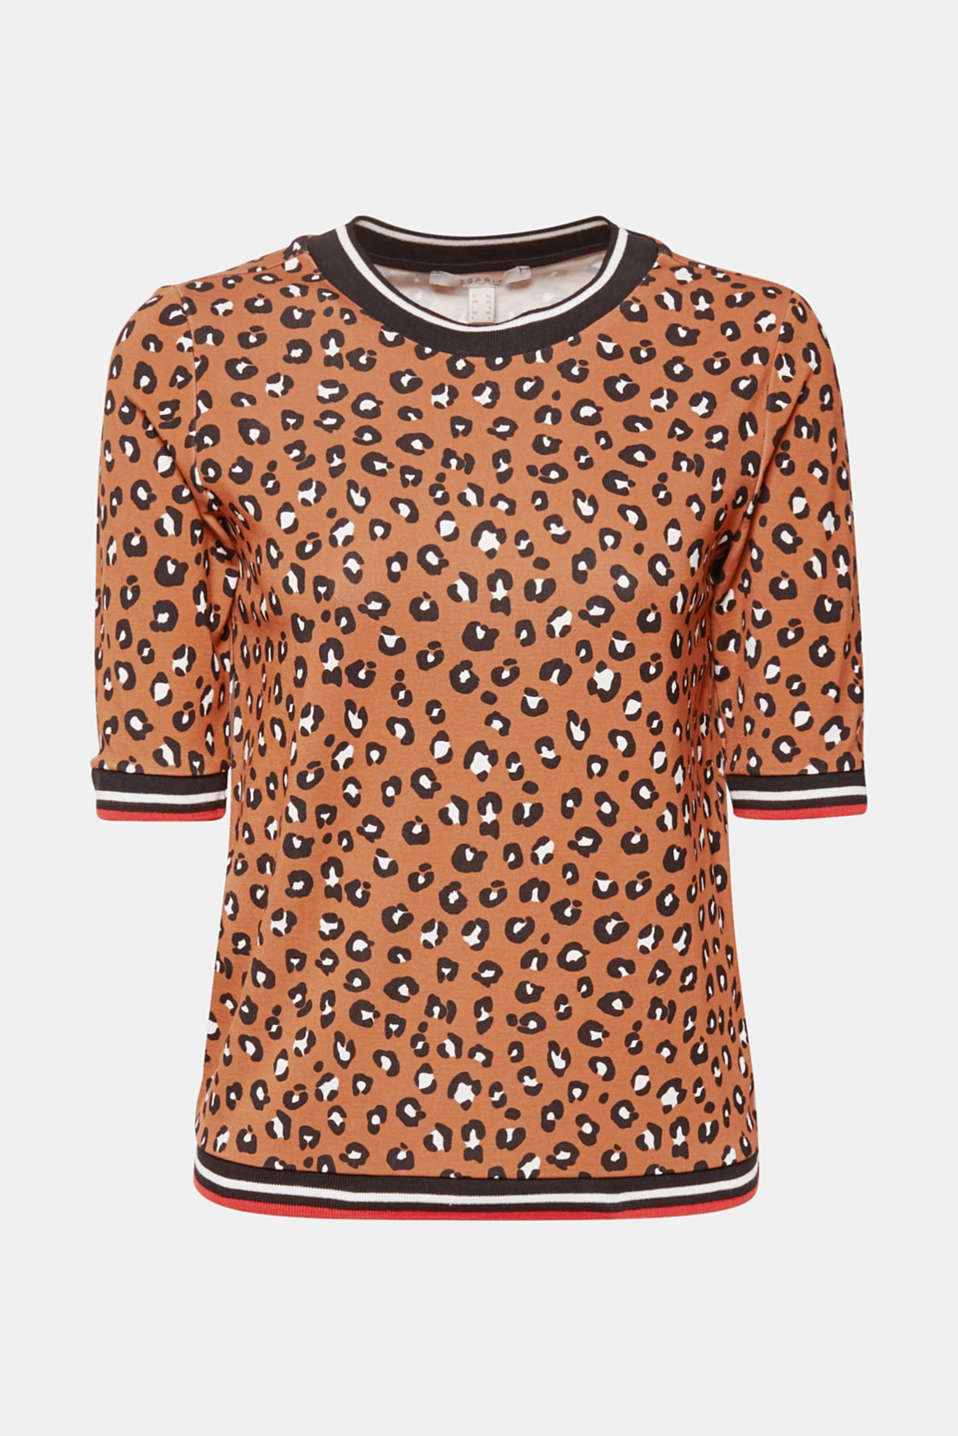 Leopard top with stretch and stripes